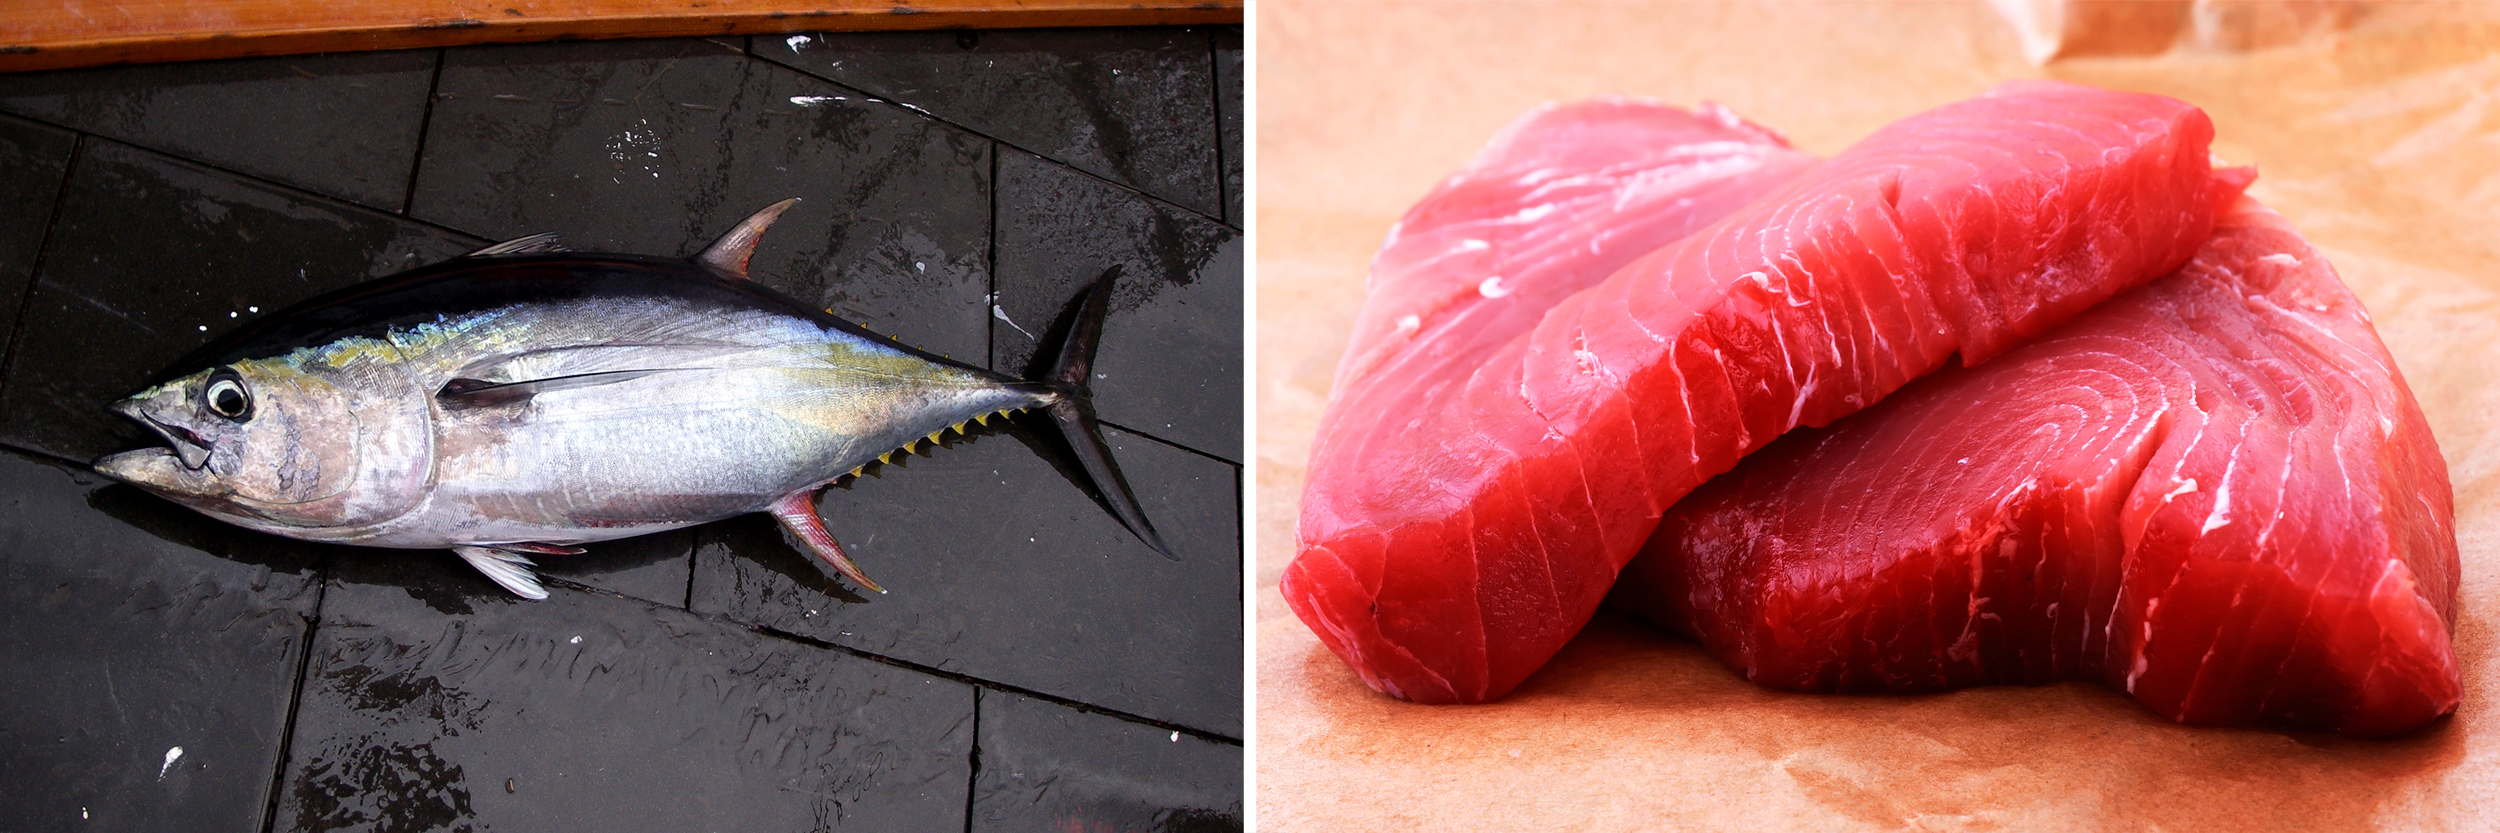 Red Fish Blue Fish Where The Fish Flesh Rainbow Comes From The Salt Npr